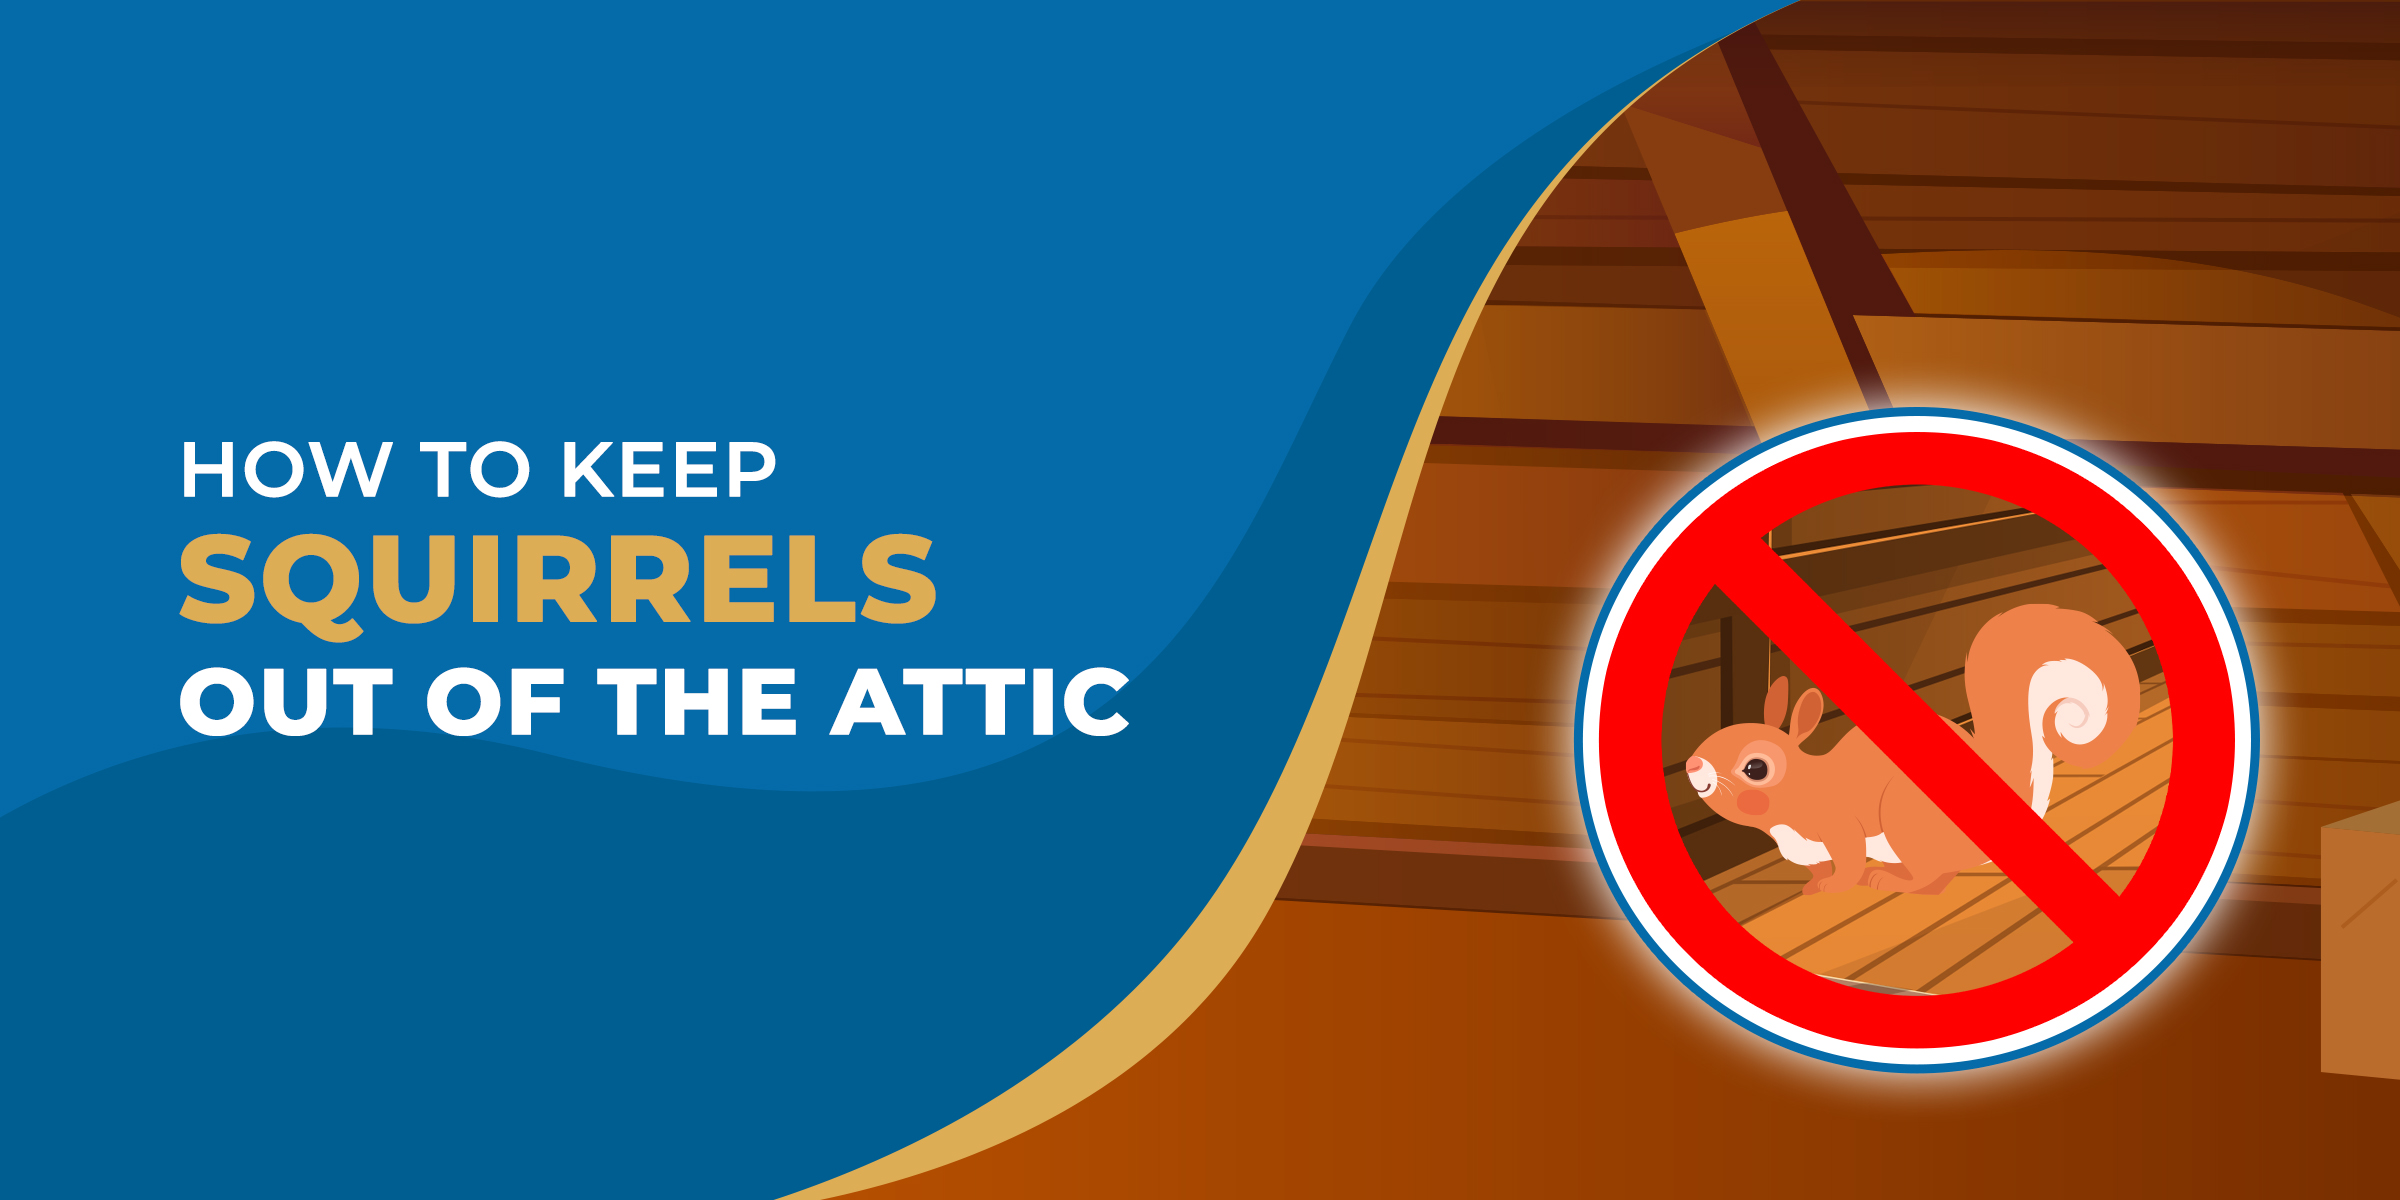 How to Keep Squirrels Out of the Attic